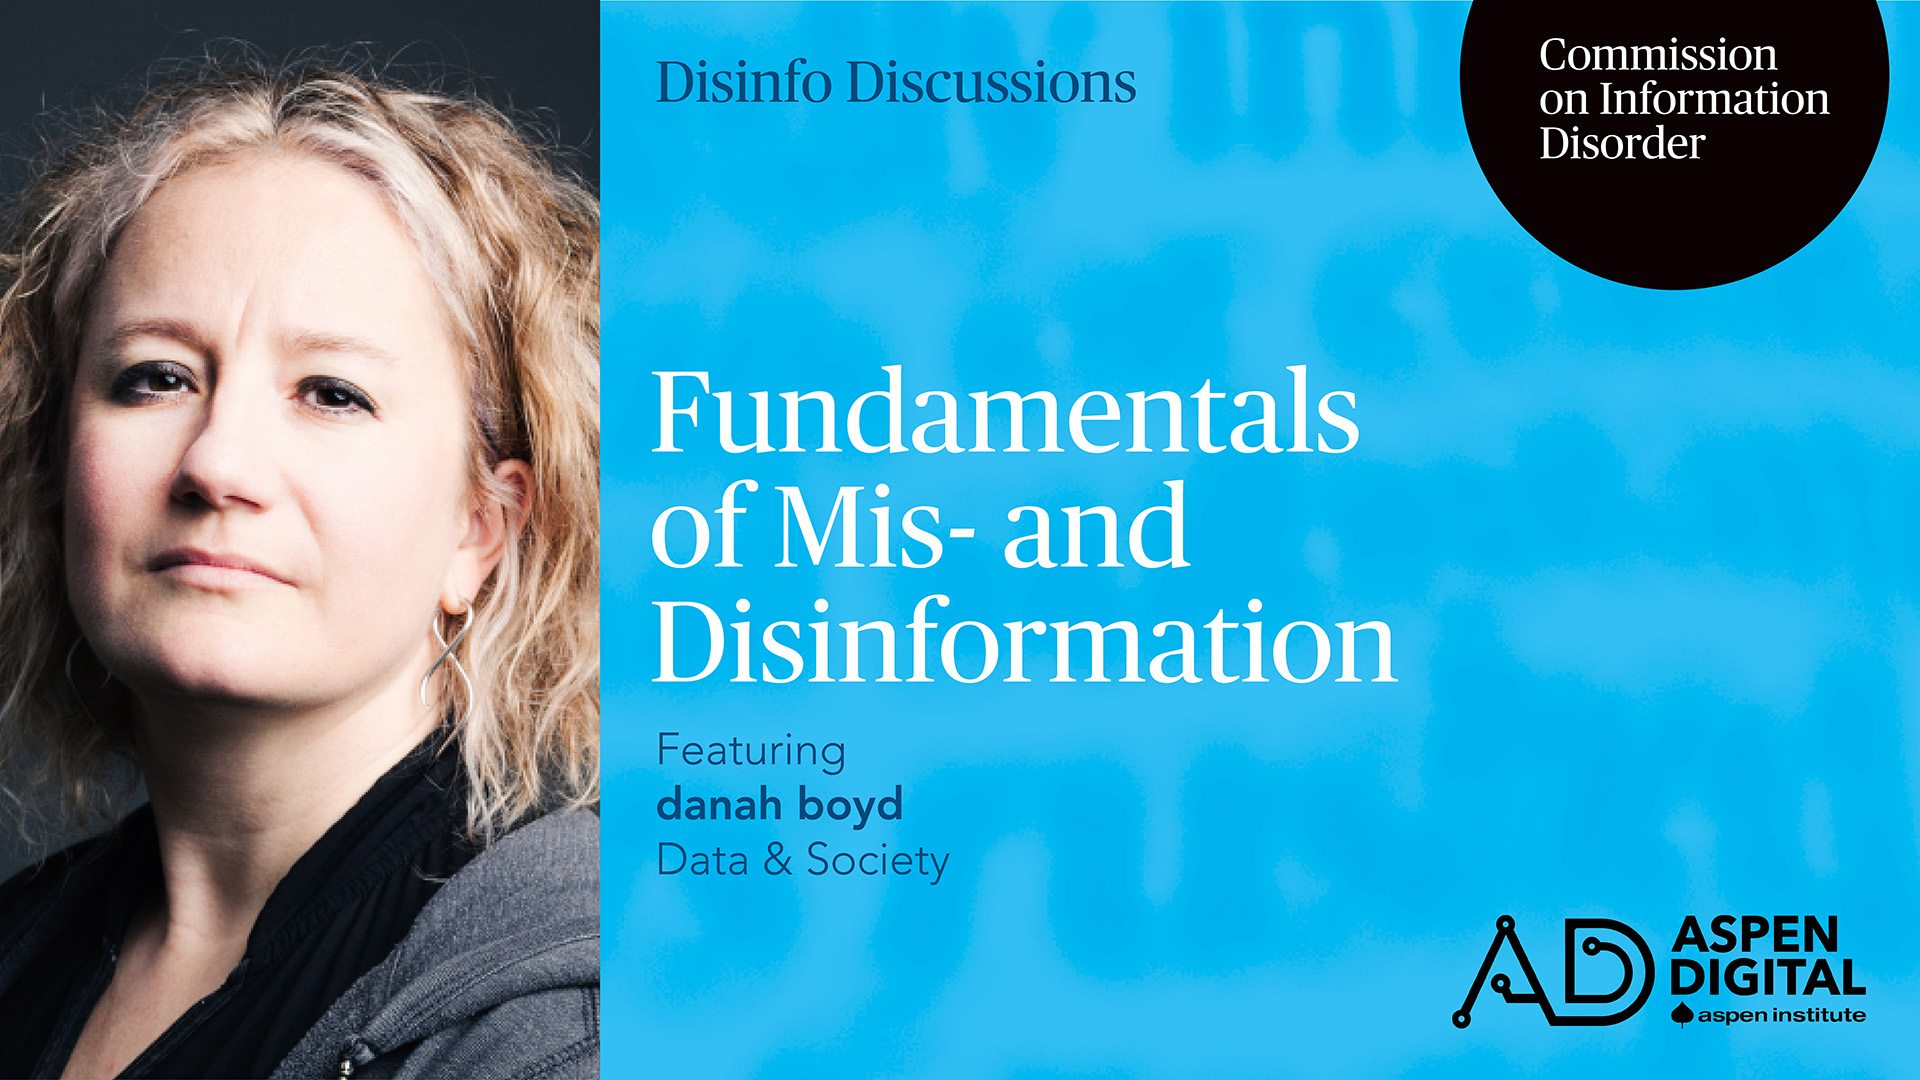 Fundamentals of Mis- and Disinformation